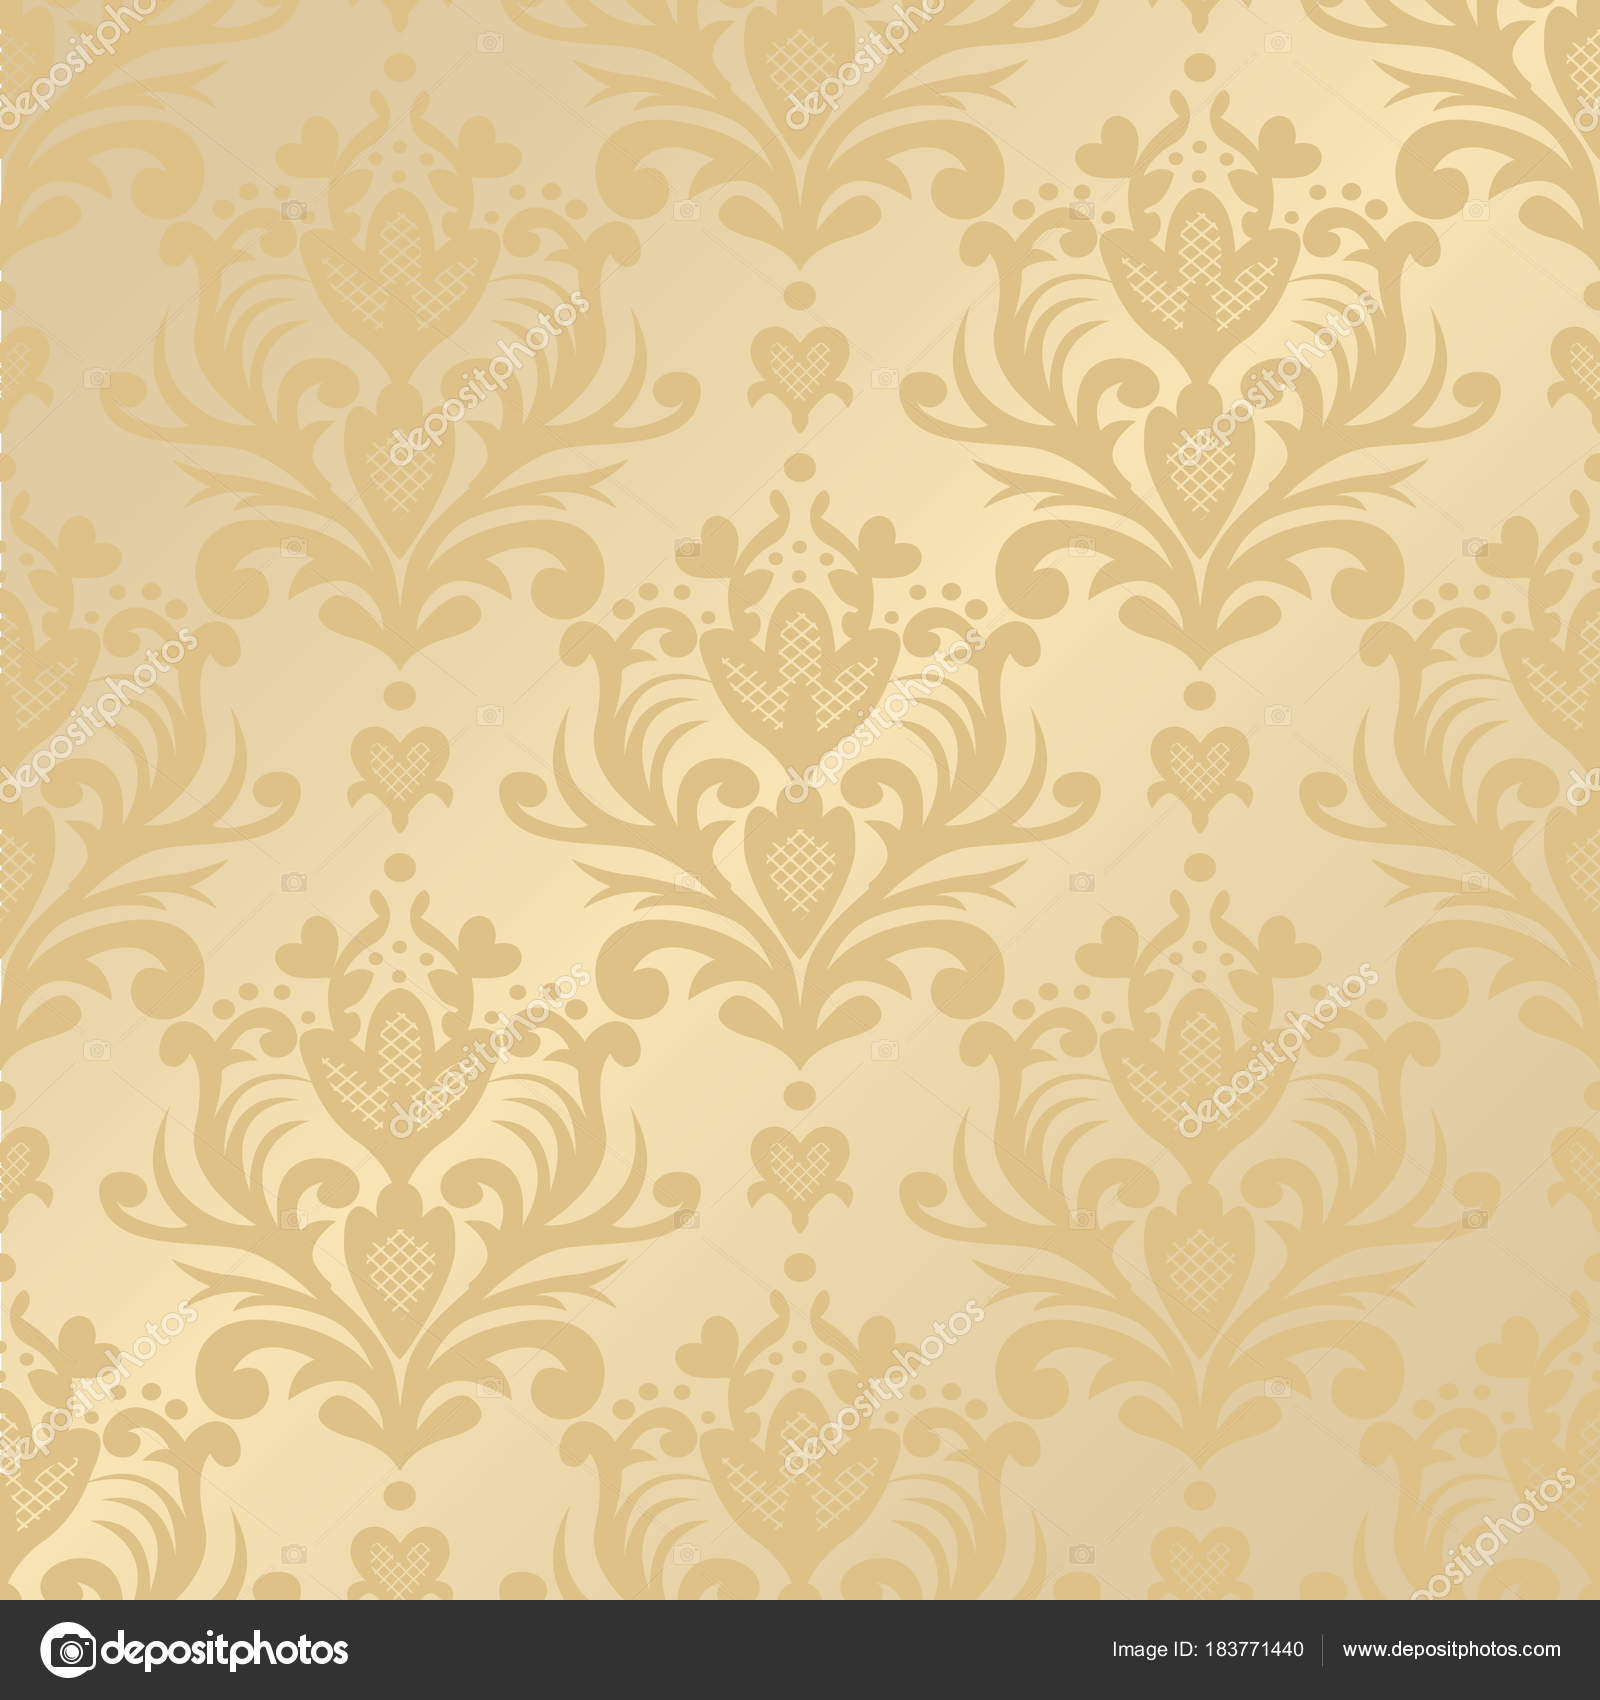 Vector Seamless Floral Damask Pattern Rich Ornament Old Damascus